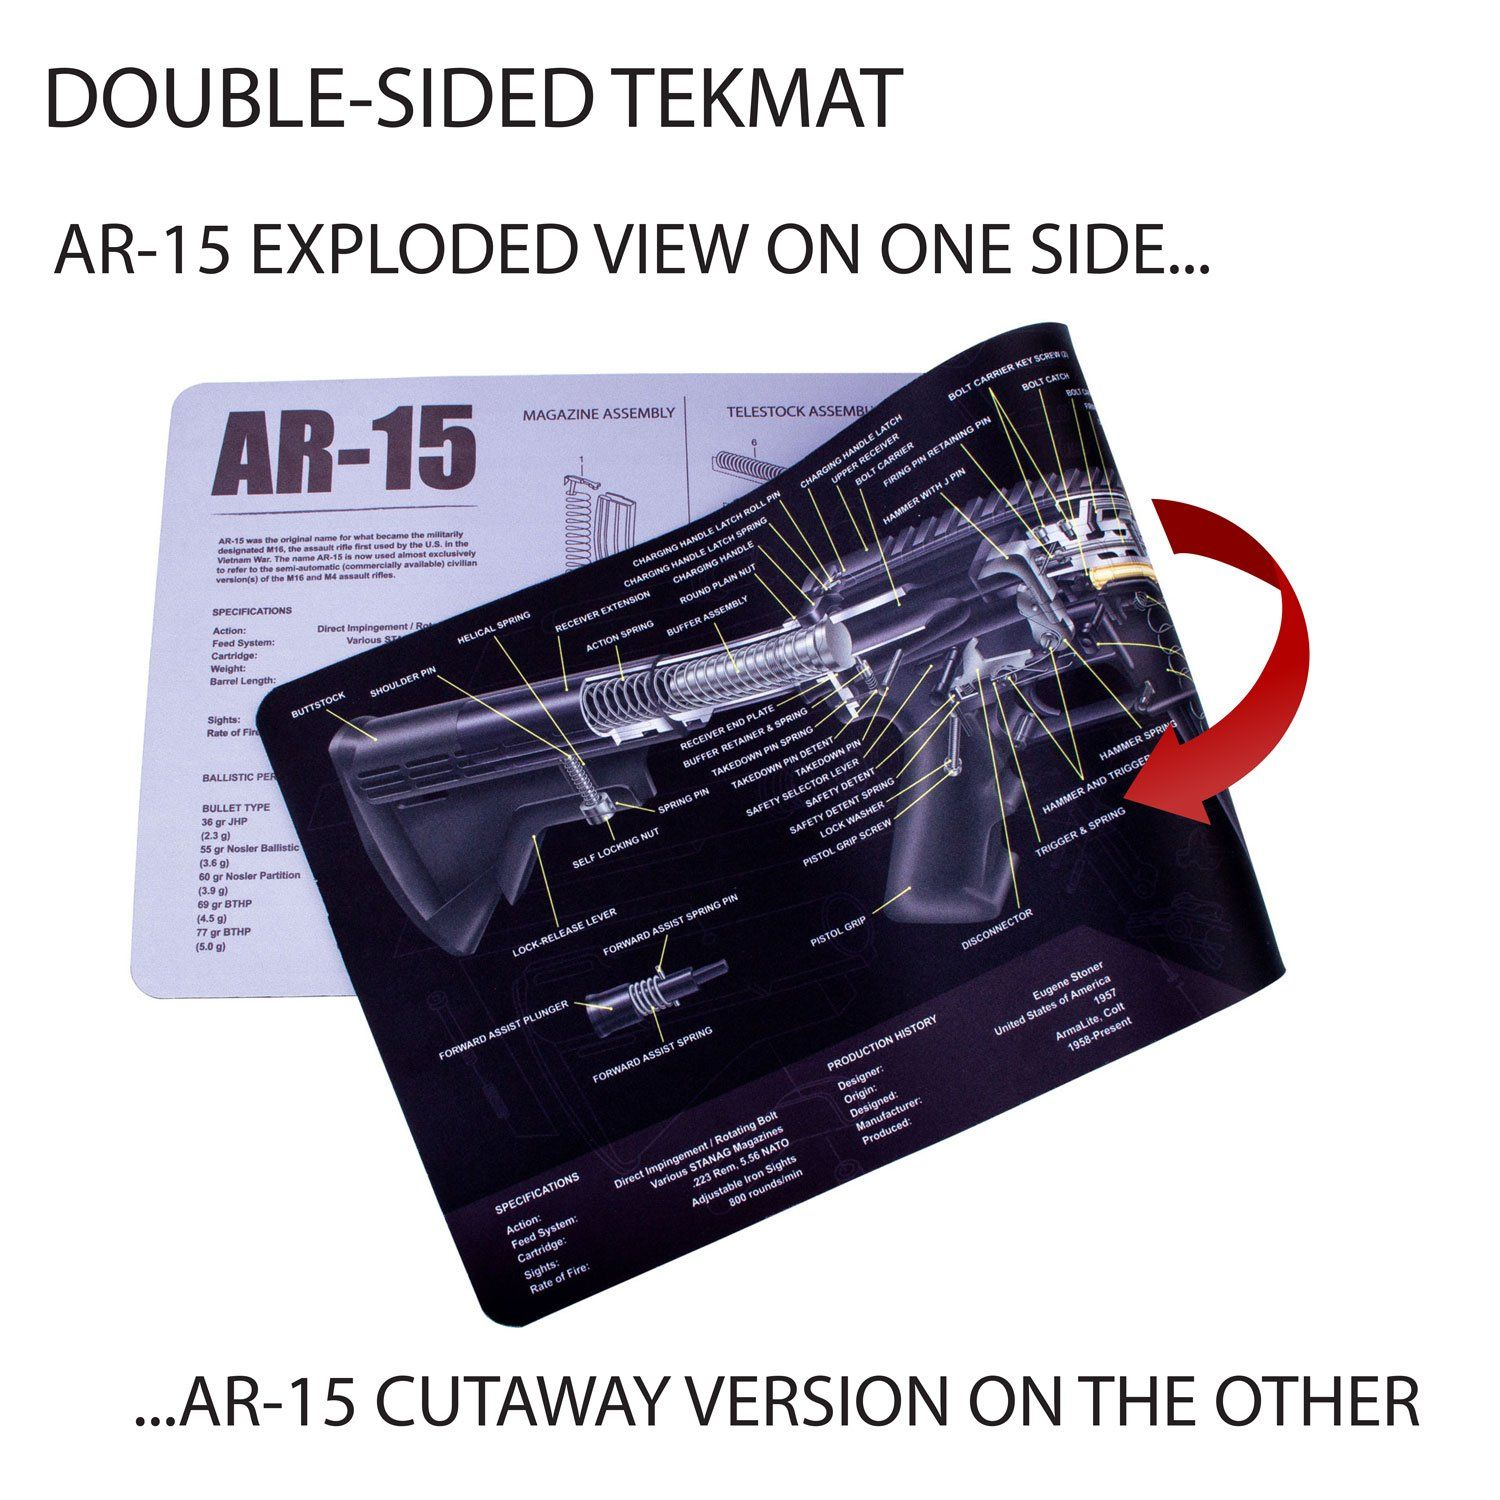 tekmat ar 15 cleaning mat 12 x 36 thick durable waterproof long gun cleaning mat with parts diagram and instructions armorers bench mat price 13 98 [ 1500 x 1500 Pixel ]